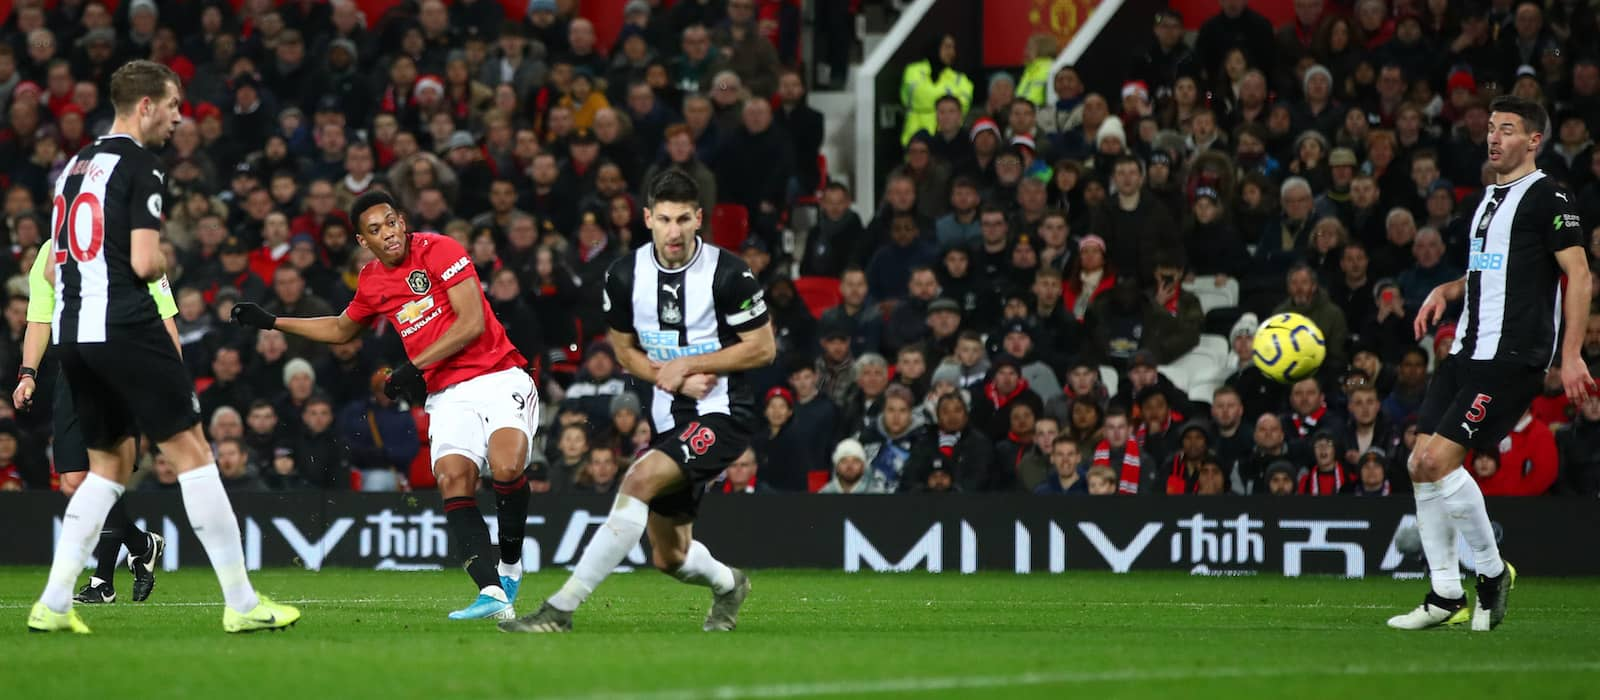 Stats: Anthony Martial's man-of-the-match performance against Newcastle United